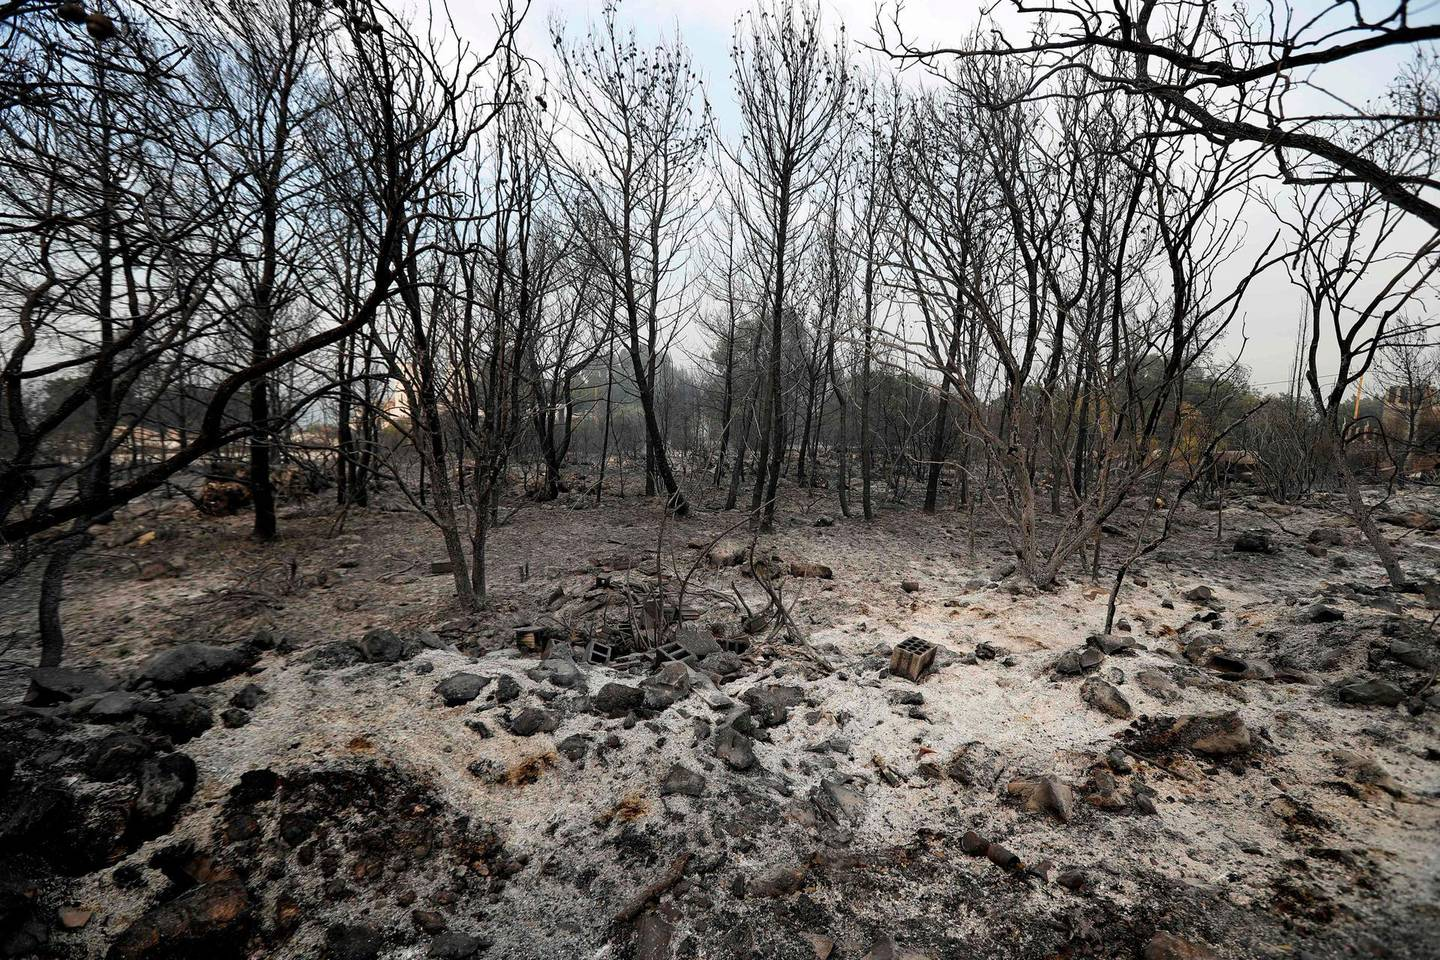 Calcined trees stand in an ash-covered field after fires broke out around the village of Meshref in Lebanon's Shouf mountains, southeast of the capital Beirut on October 15, 2019.  Flames devoured large swaths of land in several Lebanese and Syrian regions. The outbreak coincided with high temperatures and strong winds, according to the official media in both countries. / AFP / JOSEPH EID